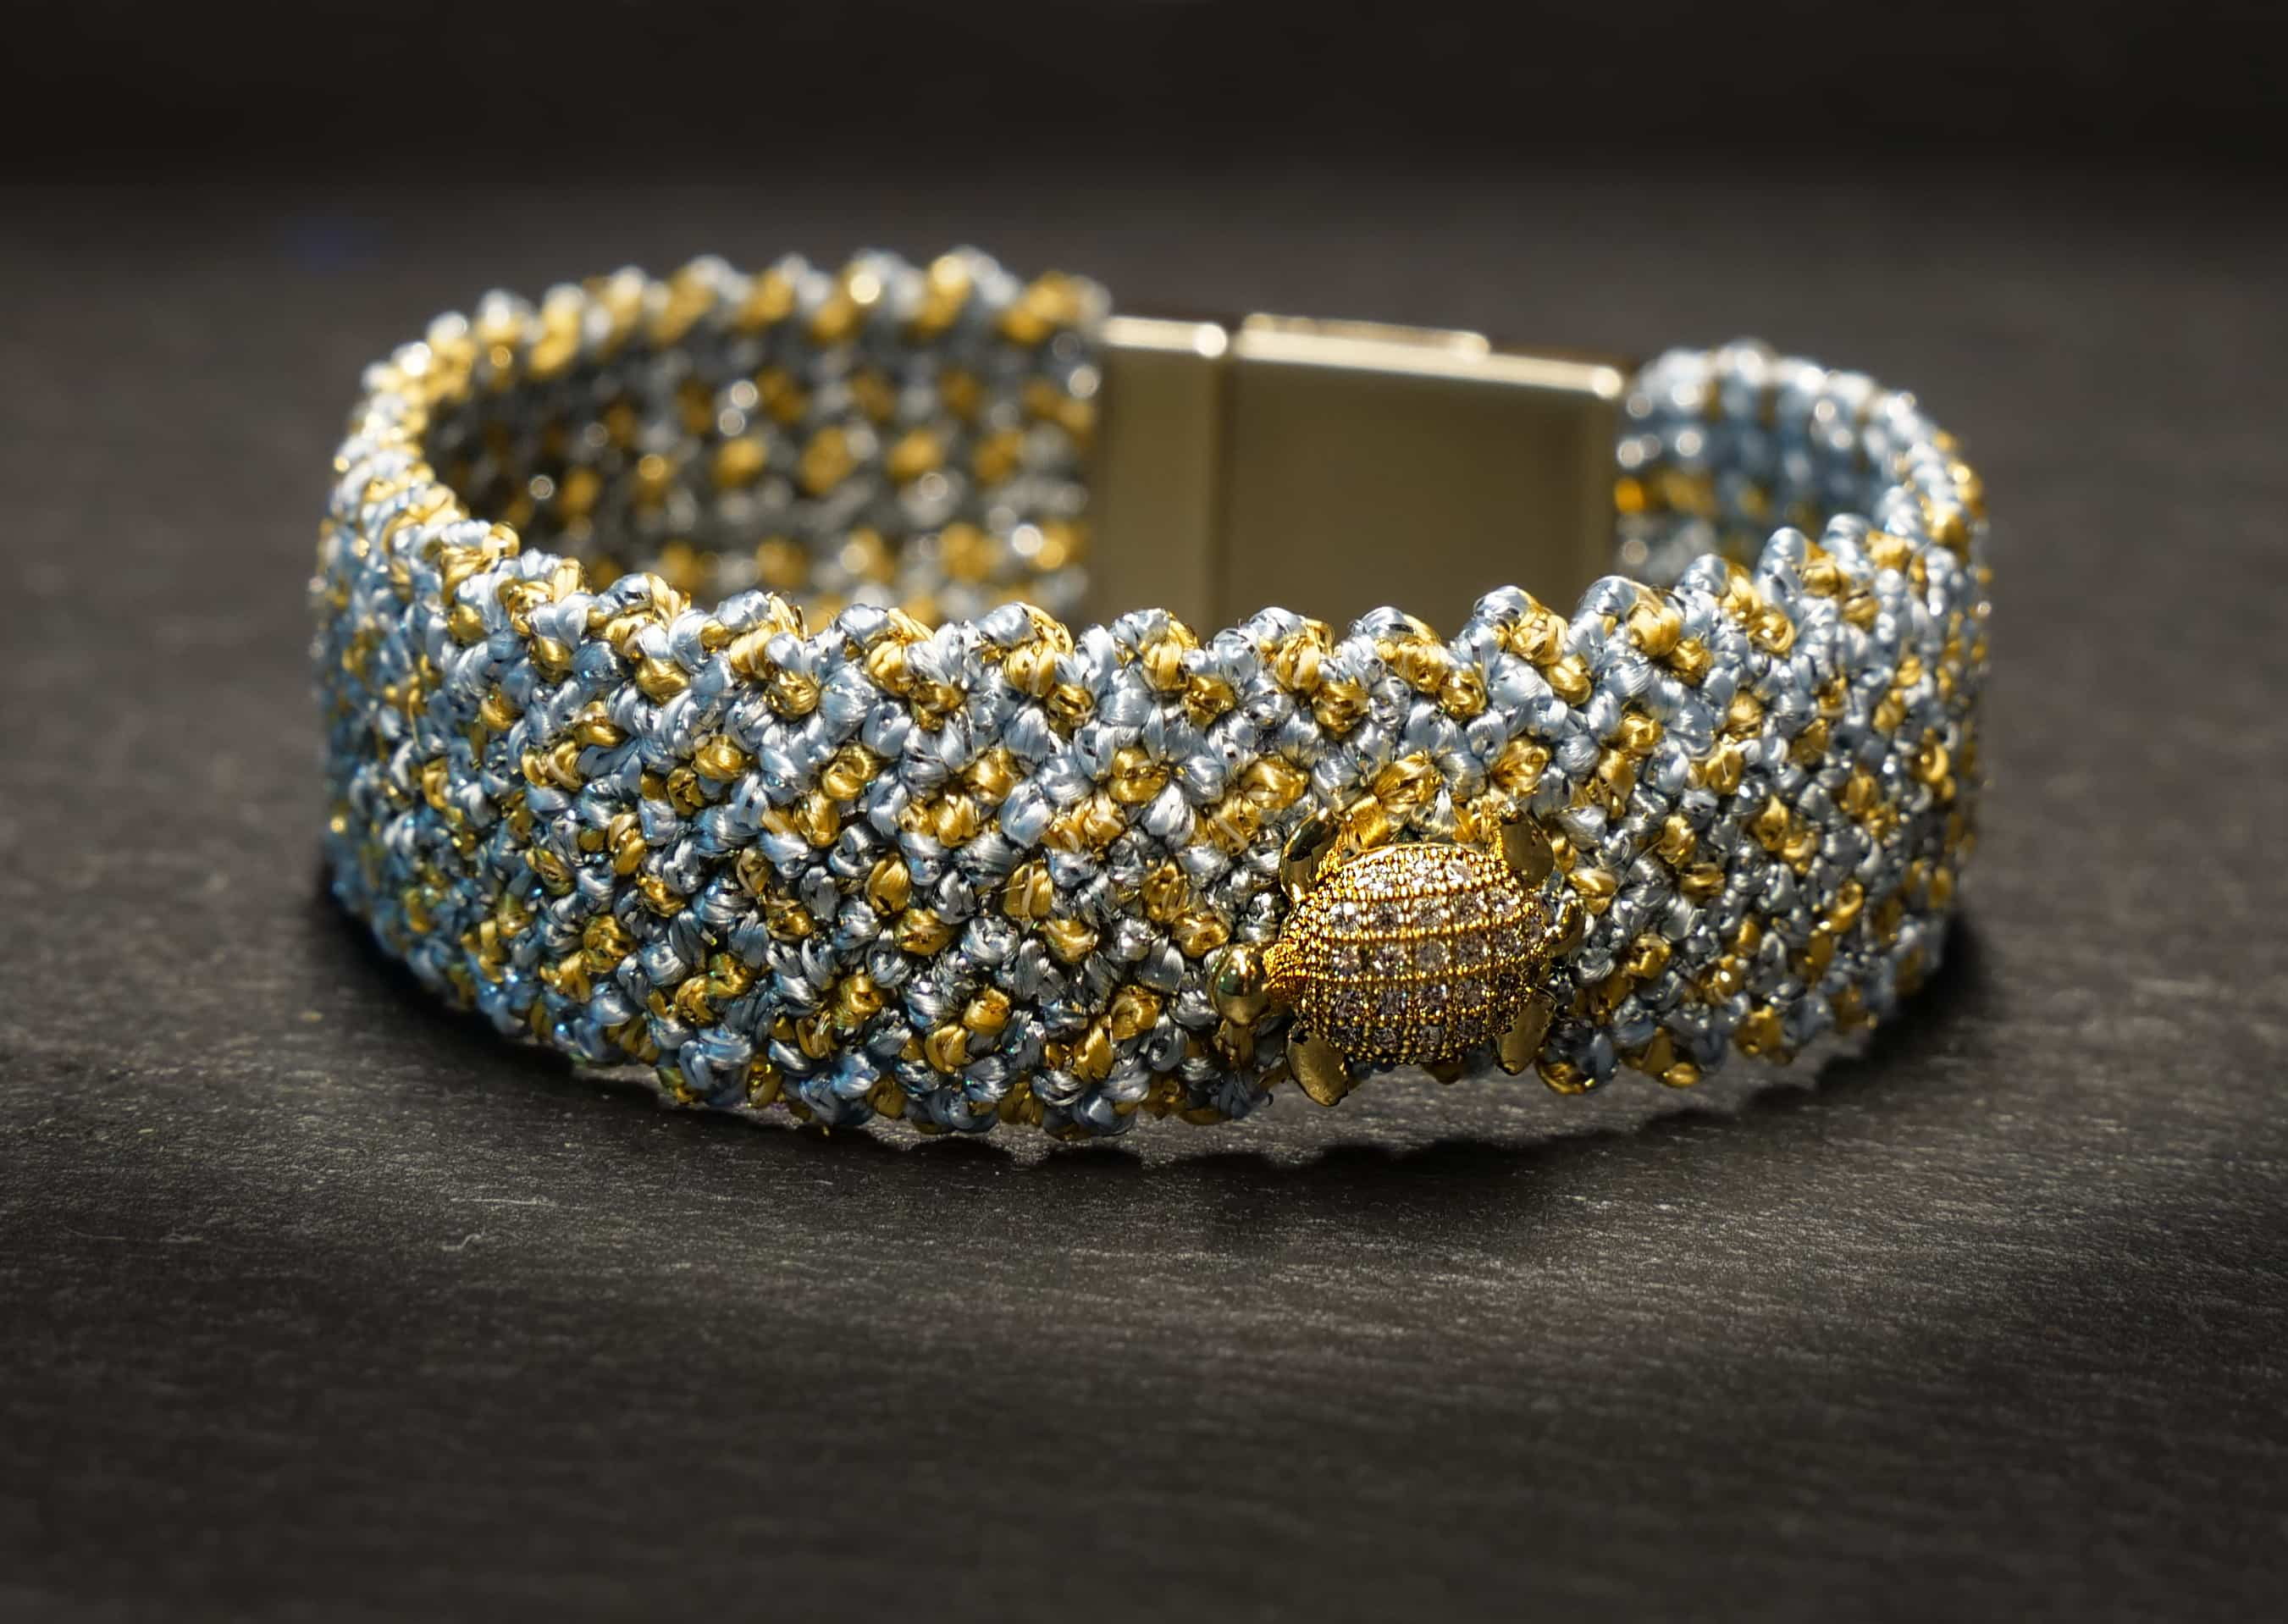 woven bracelet with turtle pendant